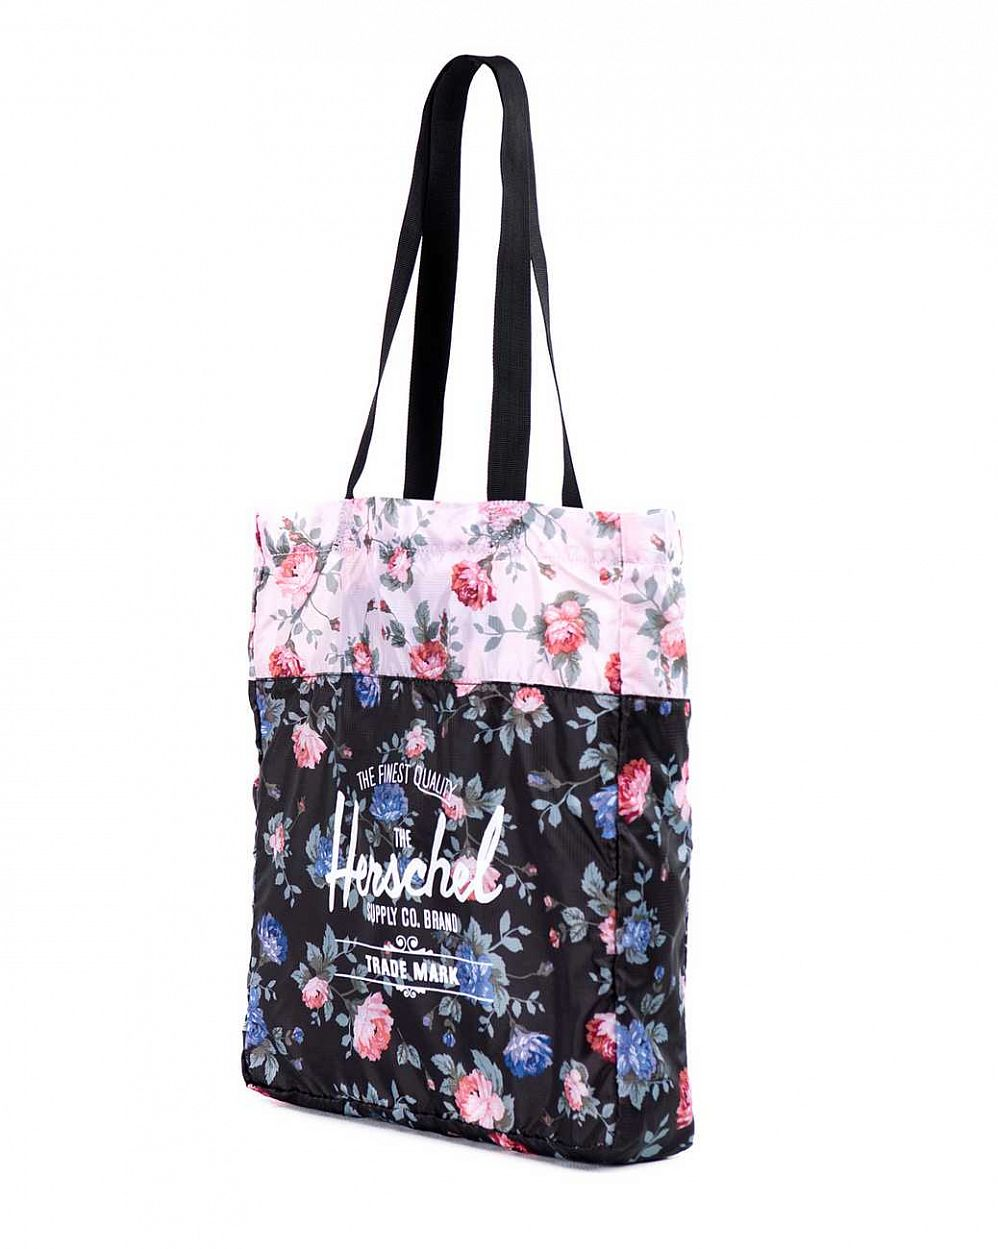 Сумка складная Herschel Packable Travel Tote Bag Black Floral Pink Floral цена в Москве